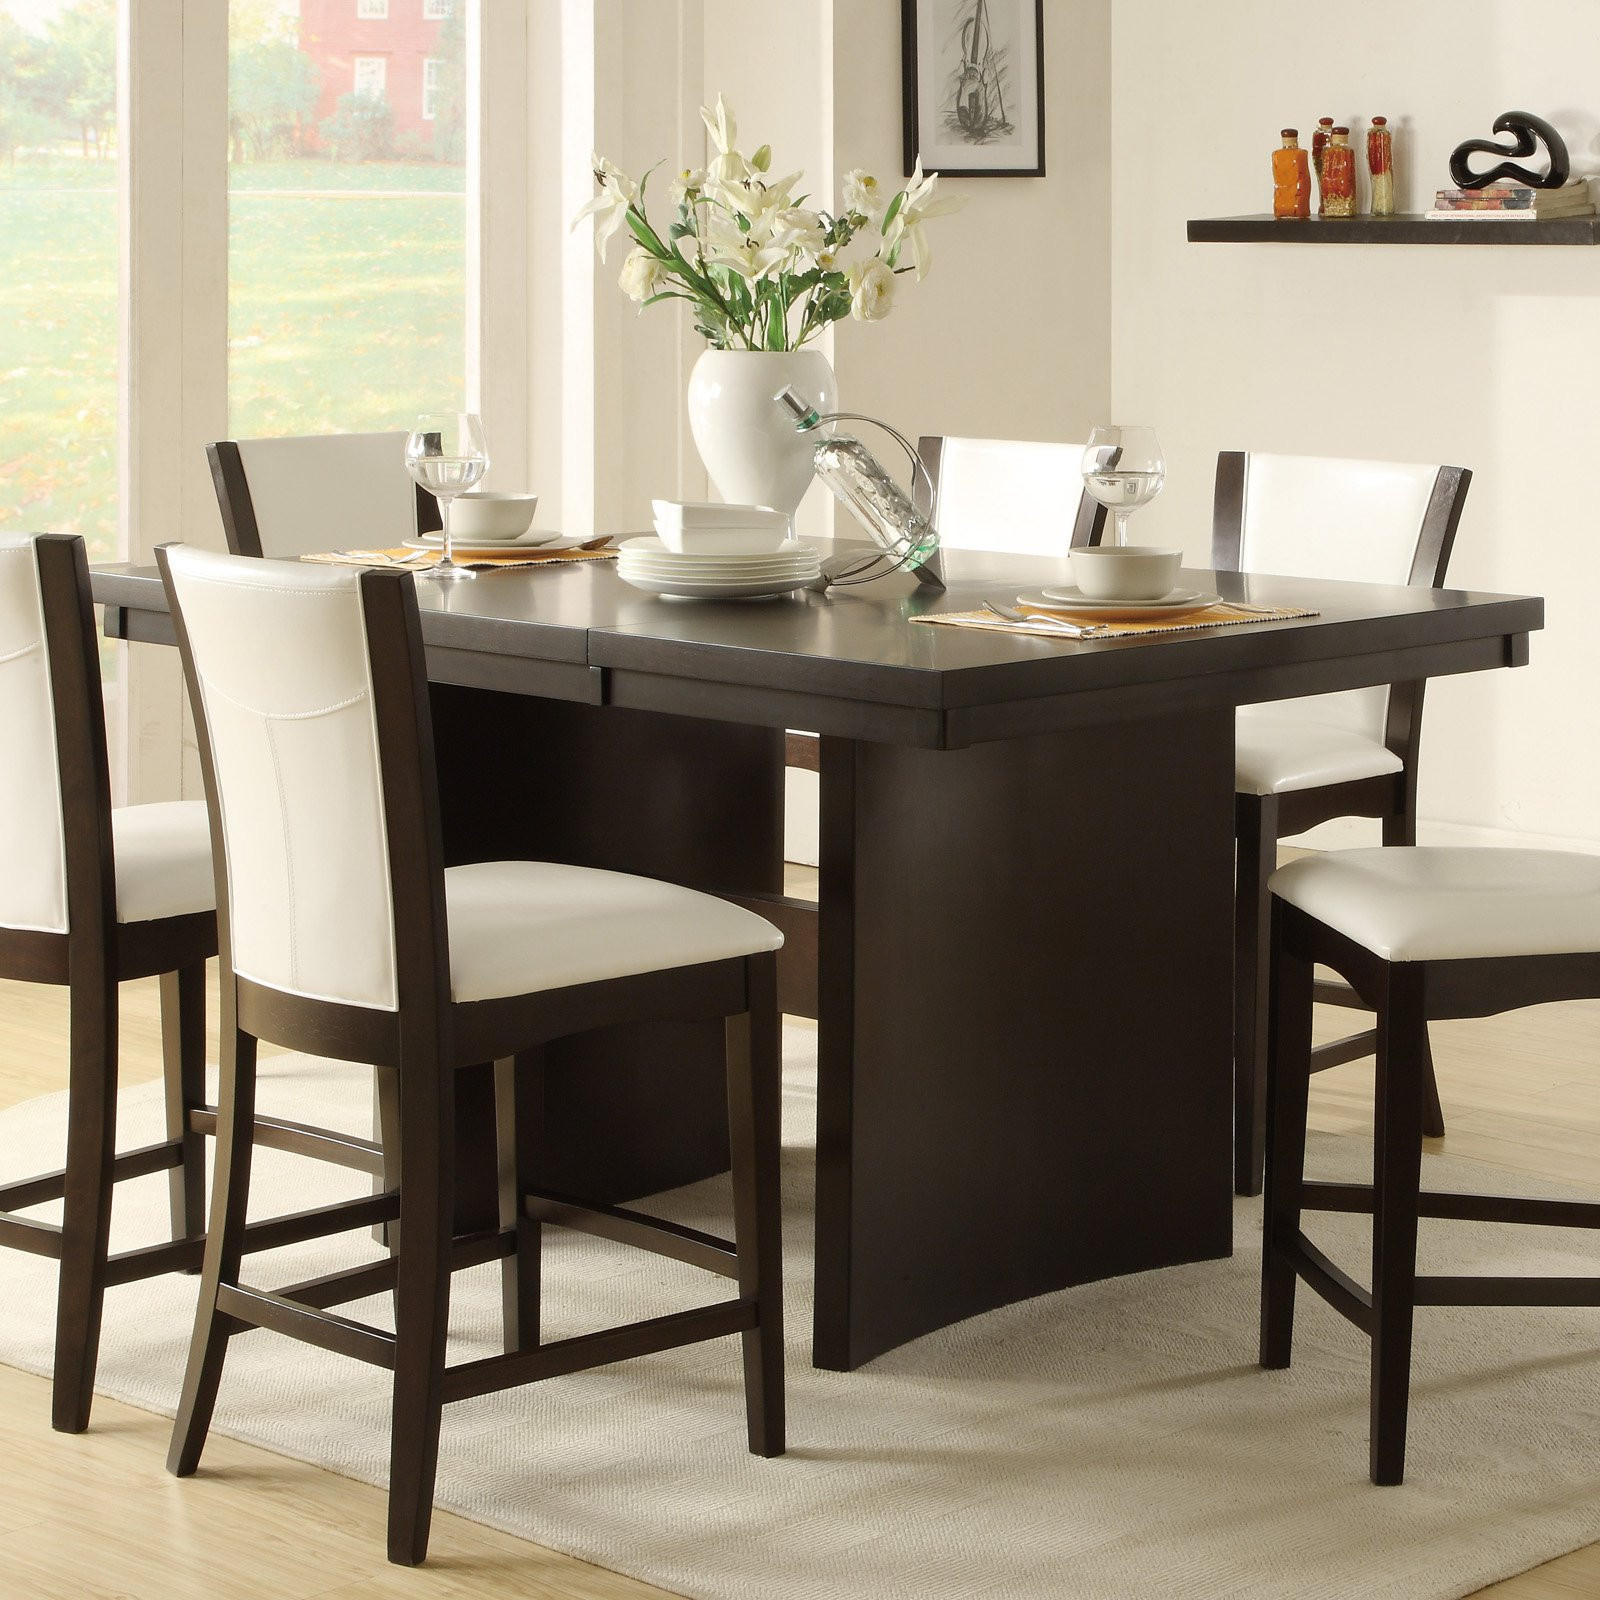 Best ideas about Tall Dining Table . Save or Pin Daisy 46 in Rectangle Counter Height Trestle Dining Table Now.